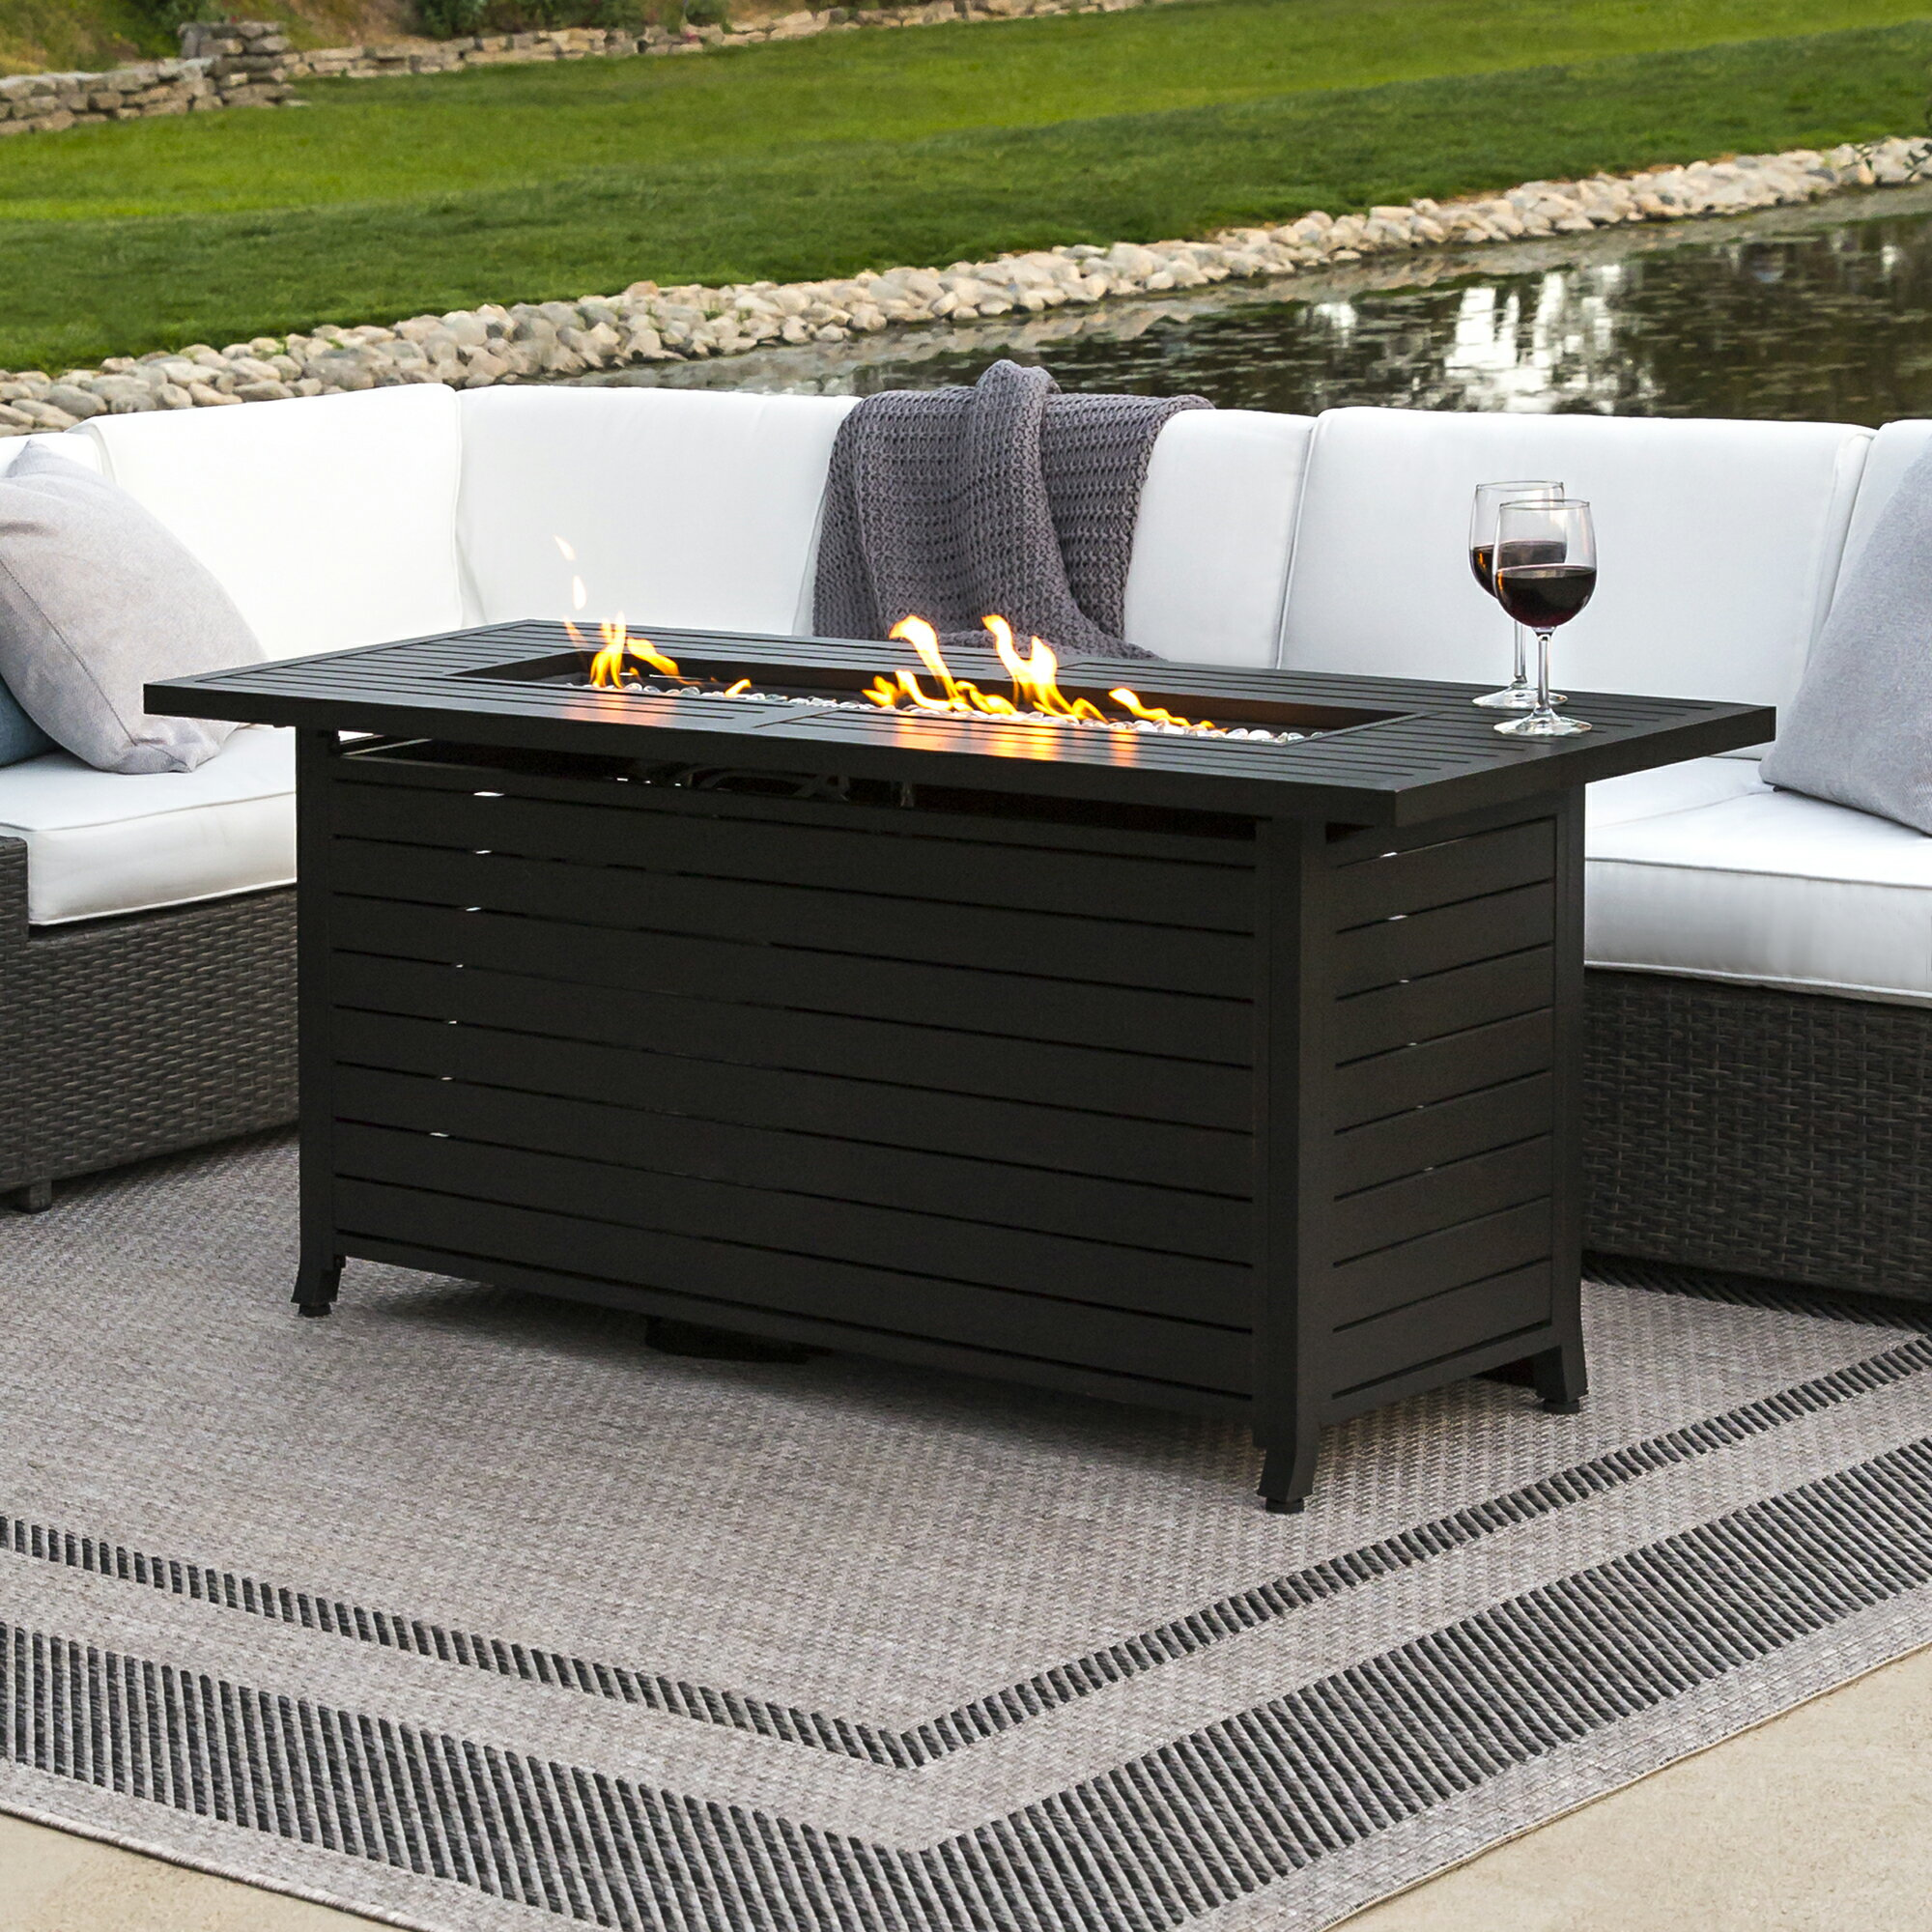 Best Choice Products 57in Rectangular Extruded Aluminum Gas Fire Pit Table  W/ Cover And Glass